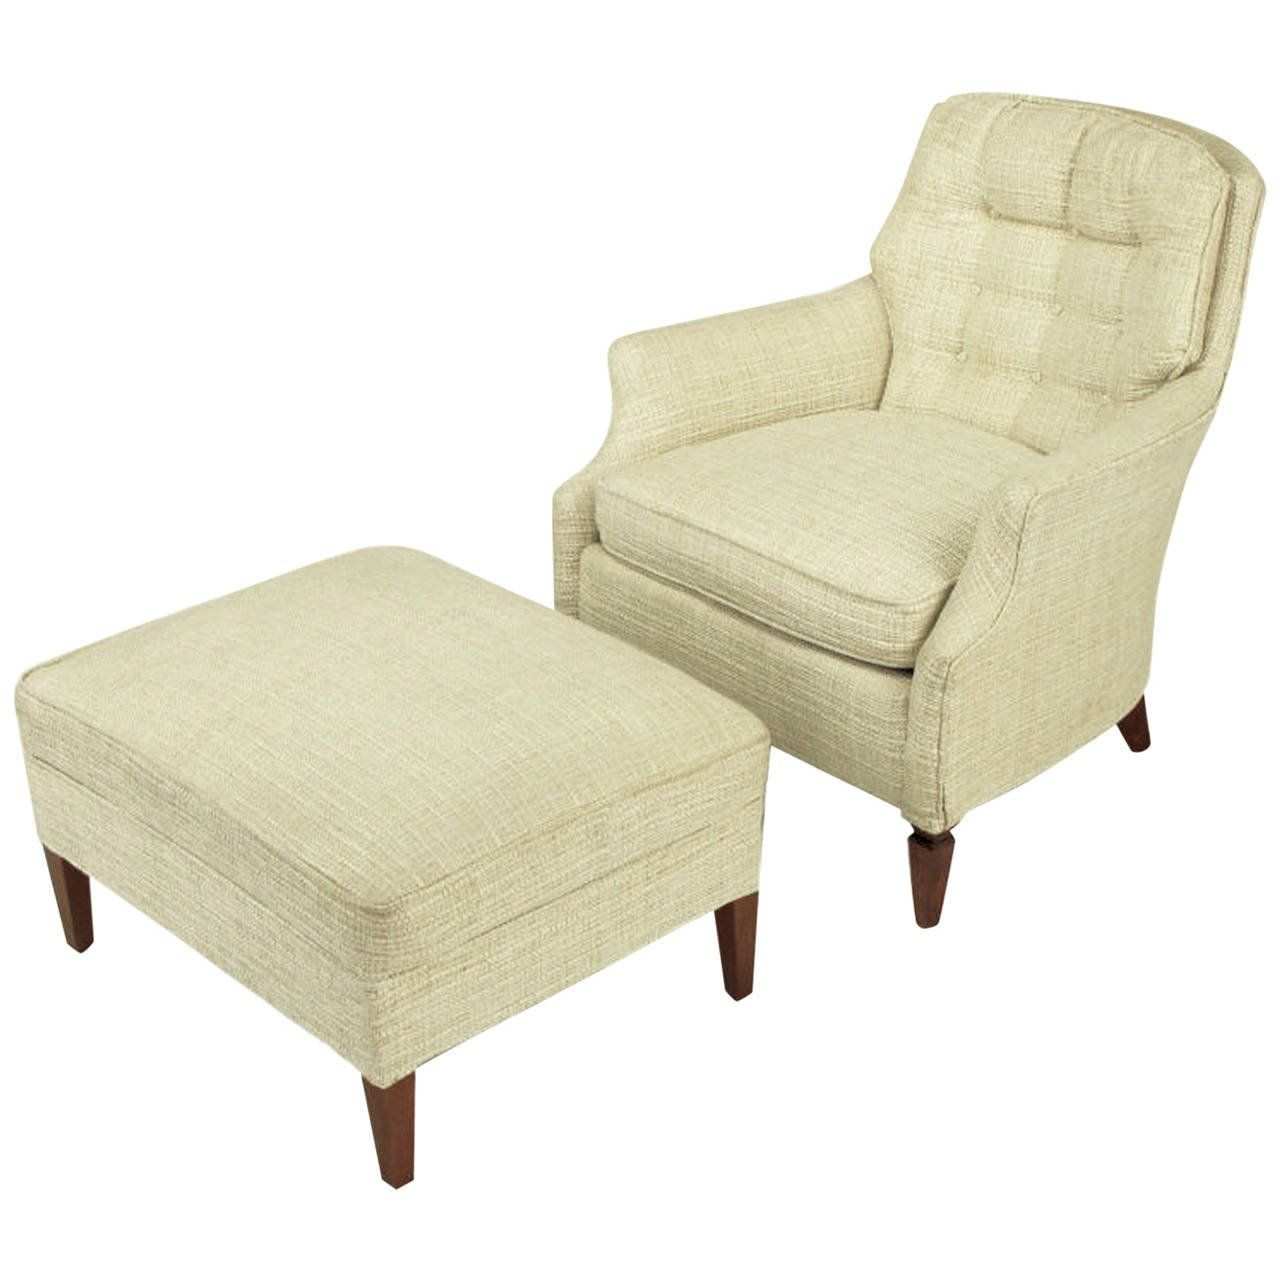 Button tufted creamy linen lounge chair and ottoman